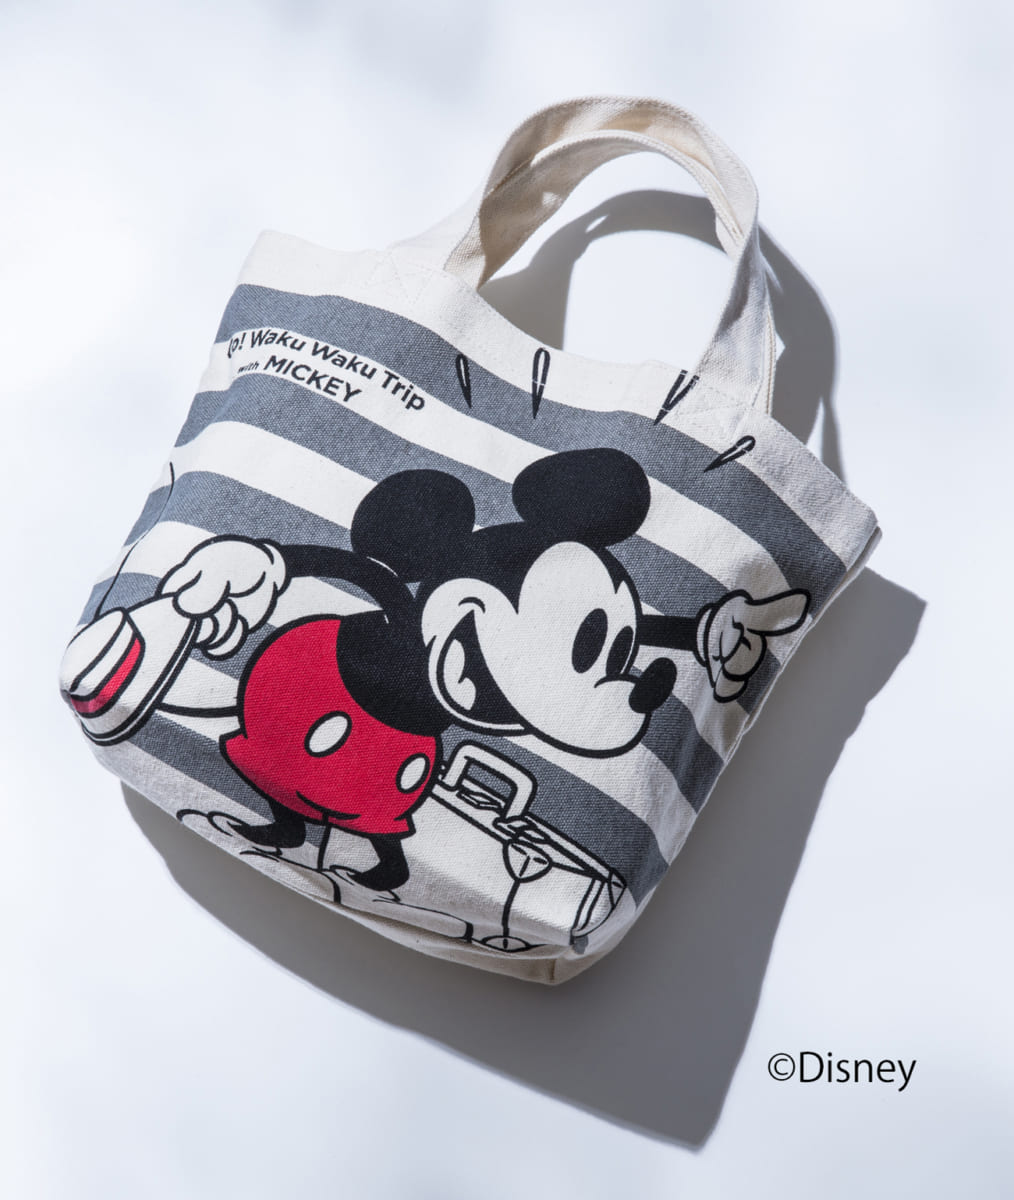 「Go! Waku Waku Trip with MICKEY」プロジェクト ランチバッグ